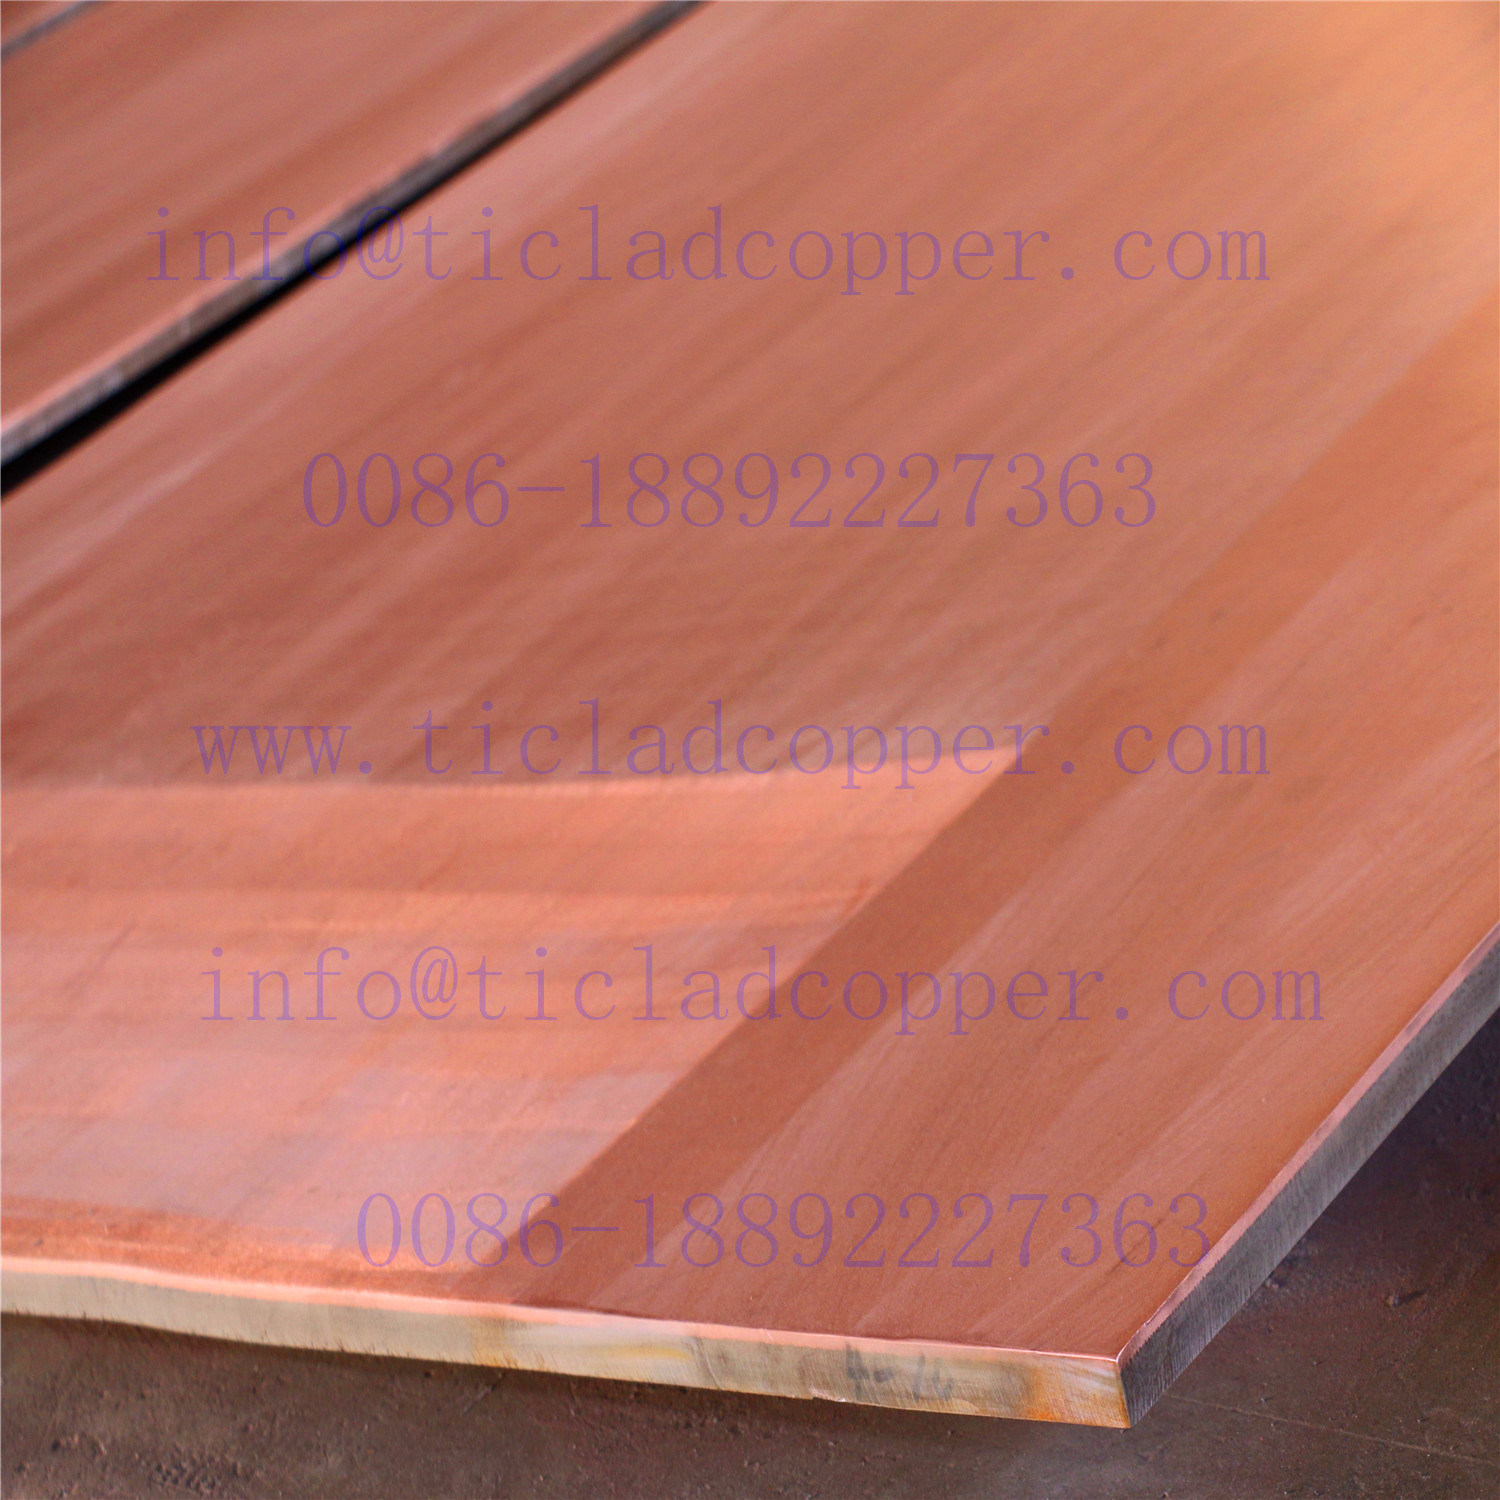 Metallurgical Bond/Explosion Bonding Titanium Clad Copper Sheet/Plates